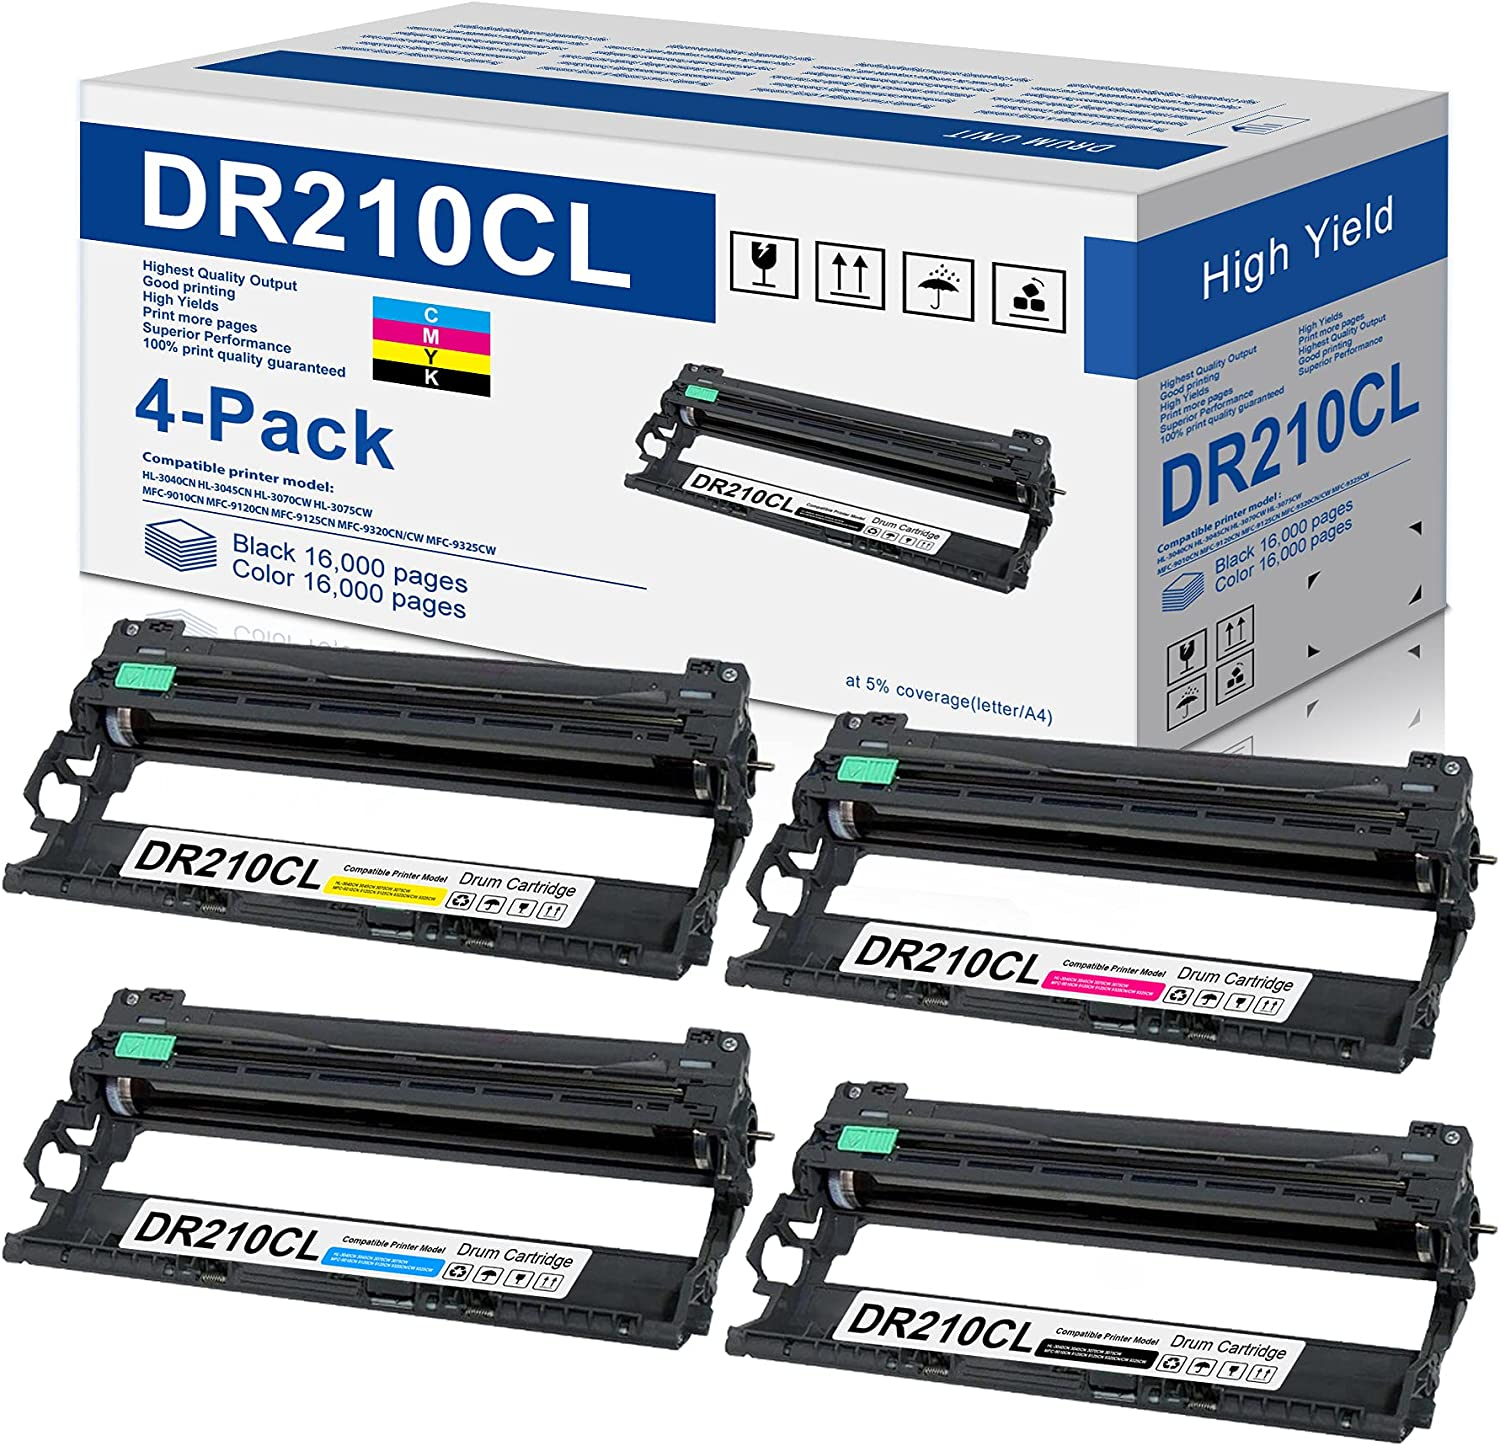 4 Pack DR-210CL Drum Unit Compatible for Brother DR210CL Replacement for HL-3040CN 3045CN 3070CW 3075CW MFC-9010CN 9120CN 9125CN 9320CN/CW 9325CW Printer (1BK+1C+1M+1Y)